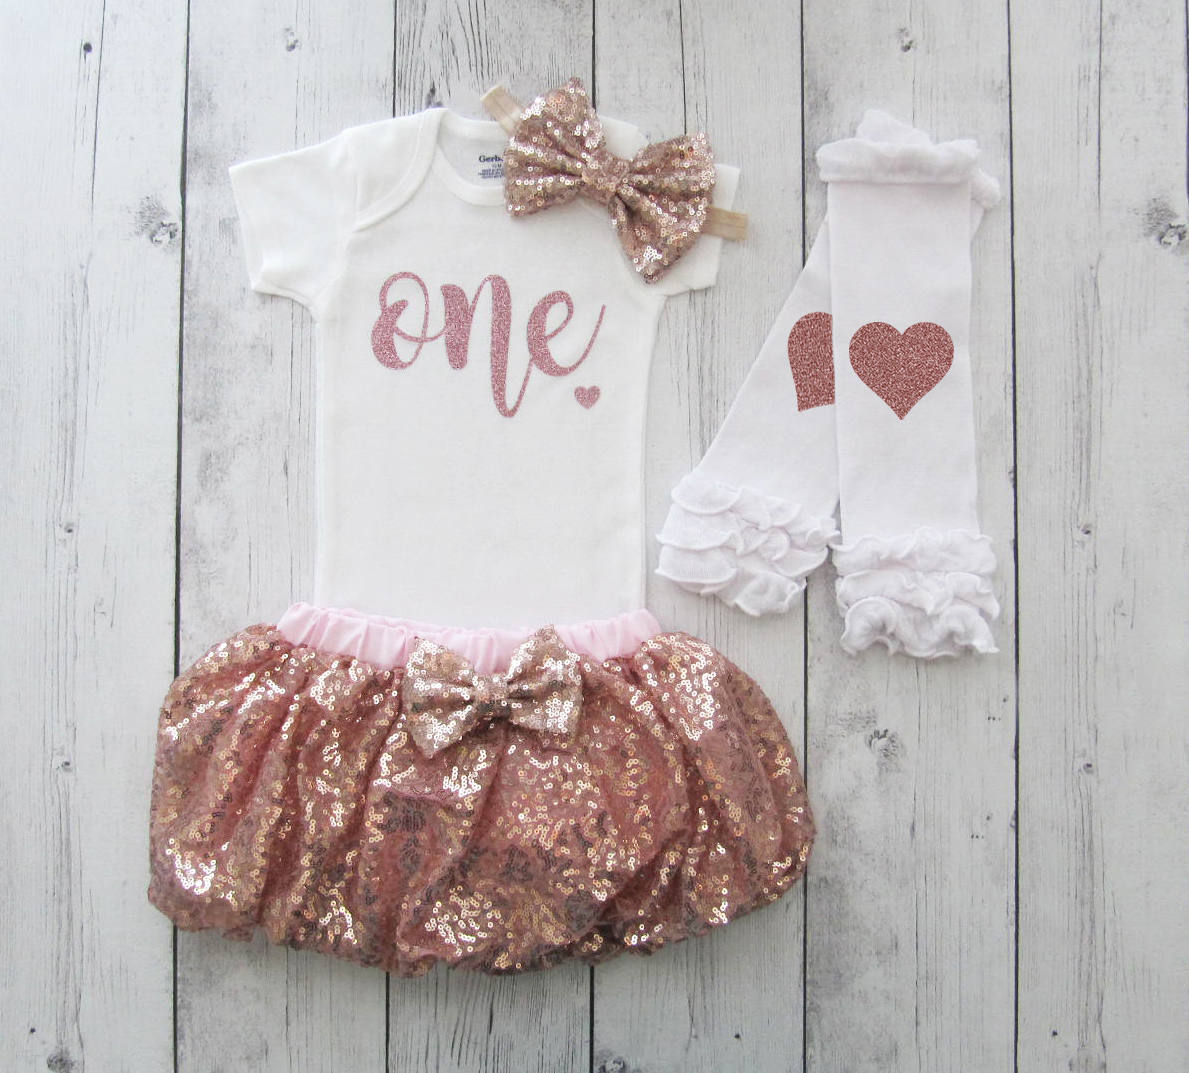 Rose Gold First Birthday Outfit for baby girl - rose gold sequin skirt, dusty rose birthday outfit girl, rose gold 1st birthday tutu girl